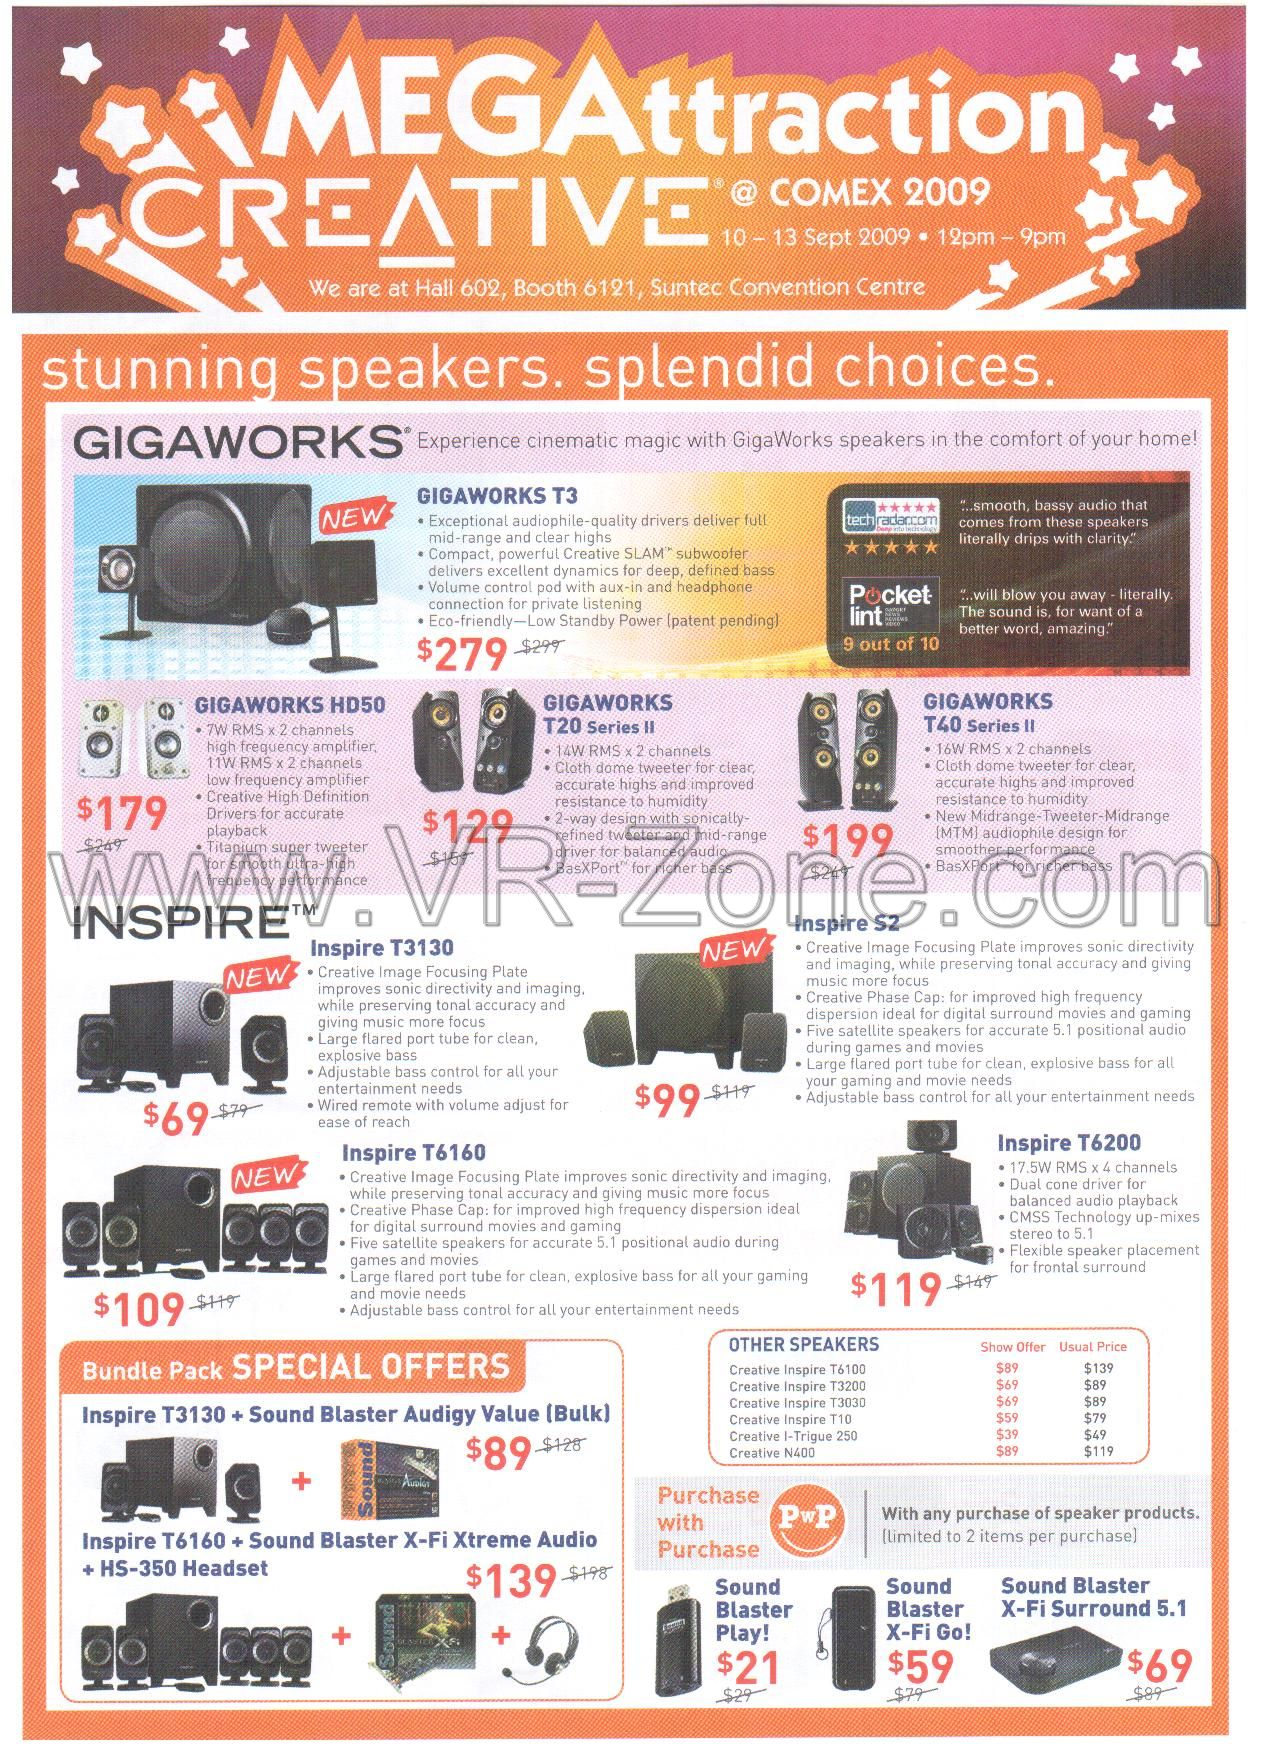 Comex 2009 price list image brochure of Creative Speakers Gigaworks Inspire X-Fi